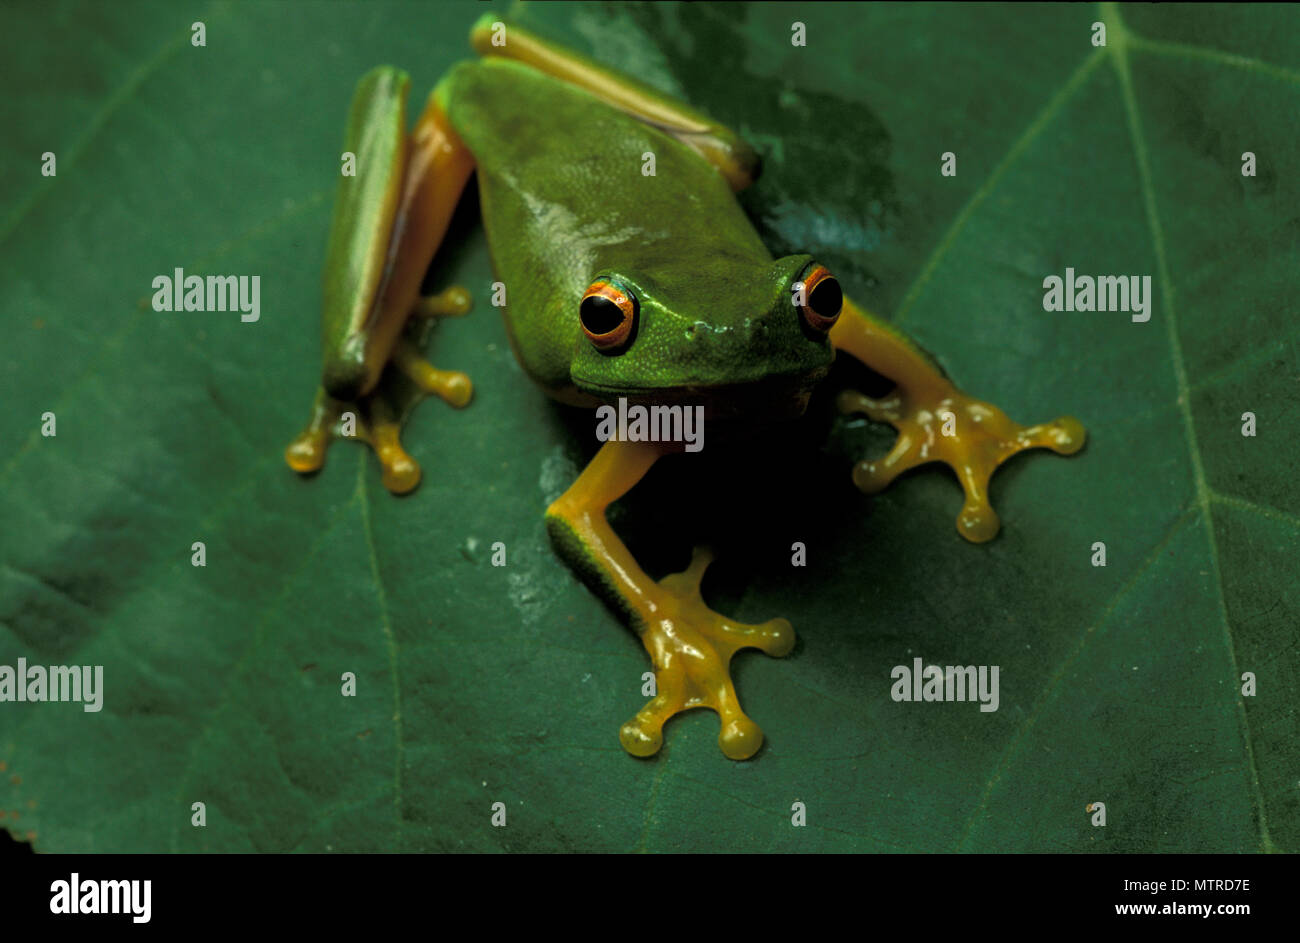 GREEN TREE FROG (LITORIA) ON A LEAF IN THE DAINTREE RAINFOREST AREA, QLD, AUSTRALIA - Stock Image